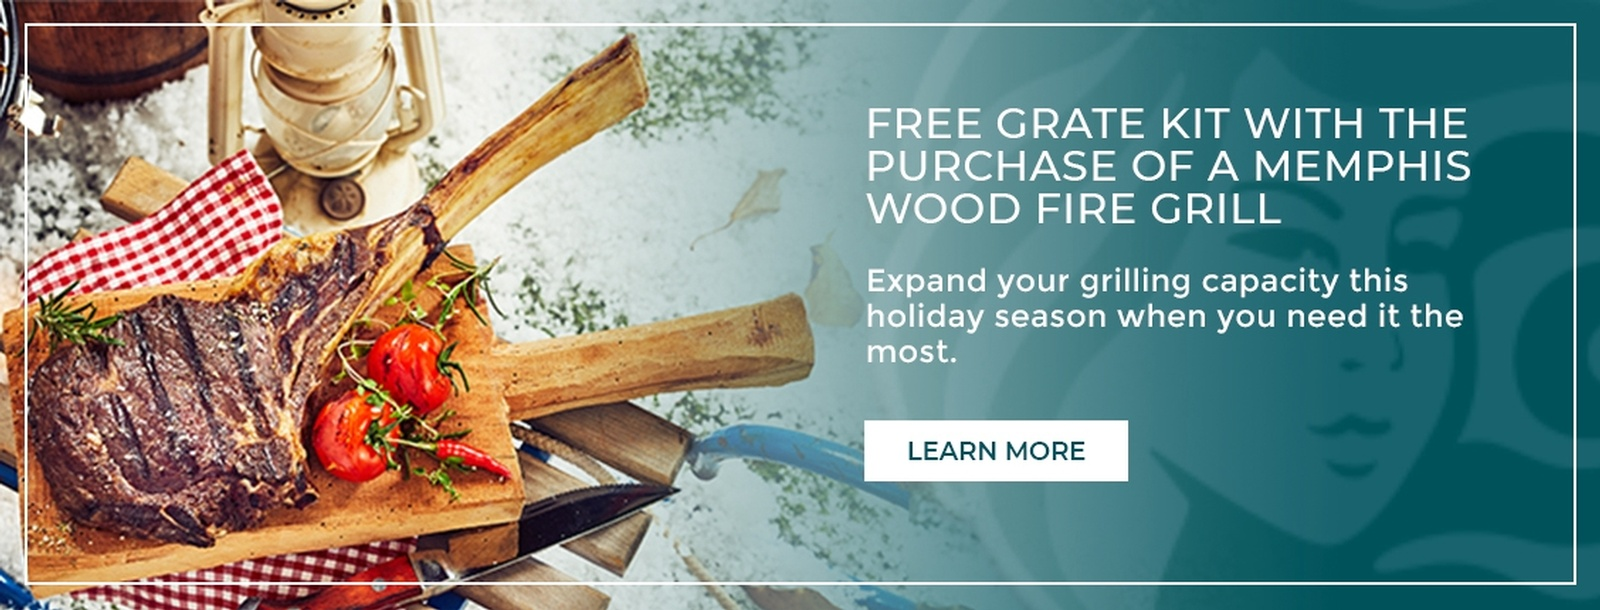 Free Grate Kit with a Purchase of a Memphis Wood Fire Grill